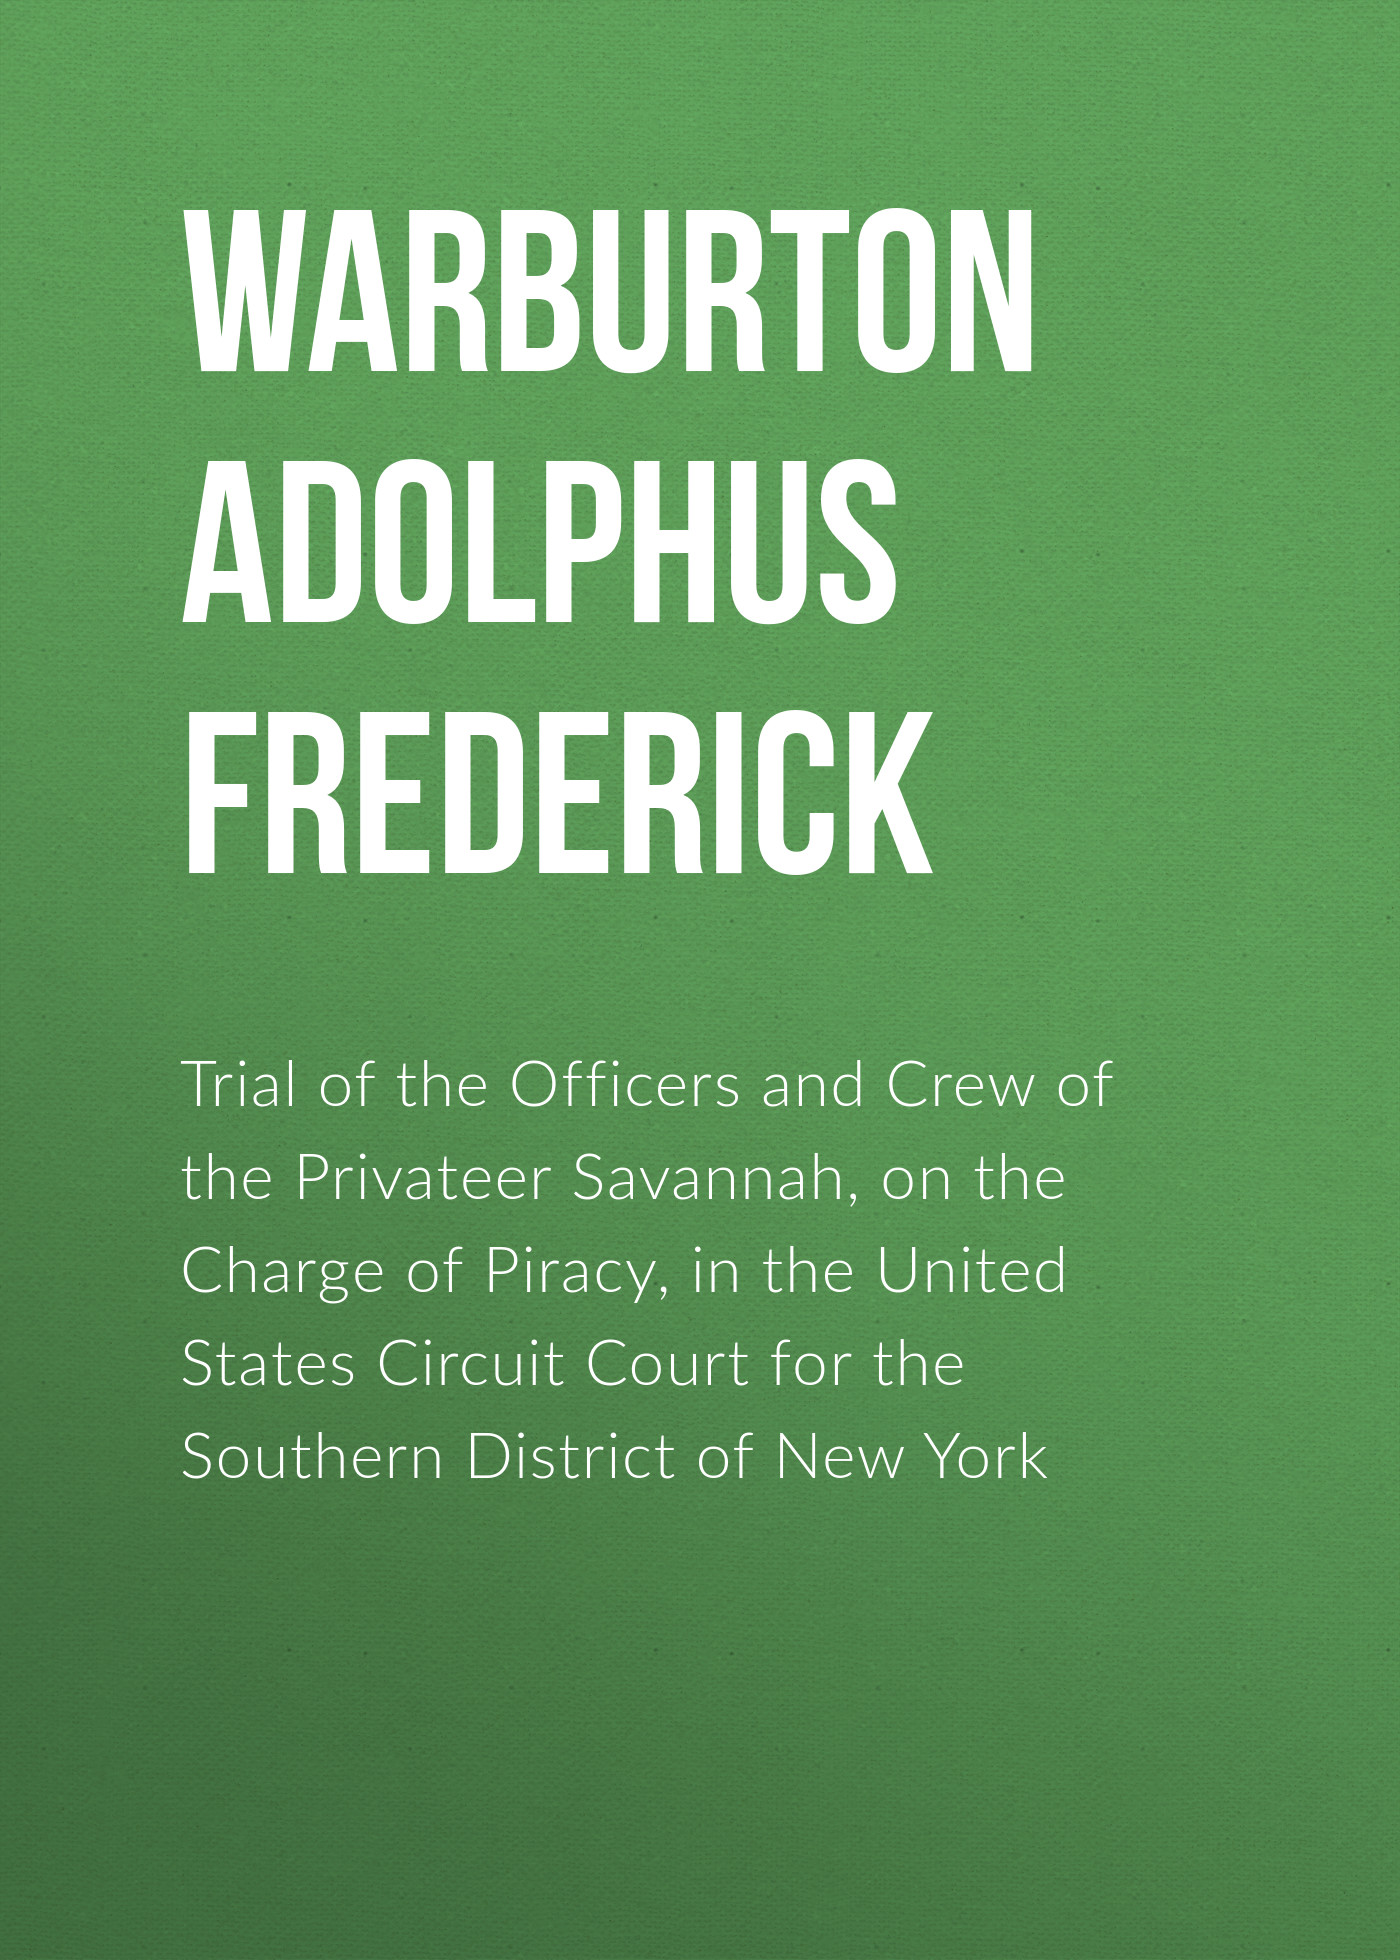 Warburton Adolphus Frederick Trial of the Officers and Crew of the Privateer Savannah, on the Charge of Piracy, in the United States Circuit Court for the Southern District of New York